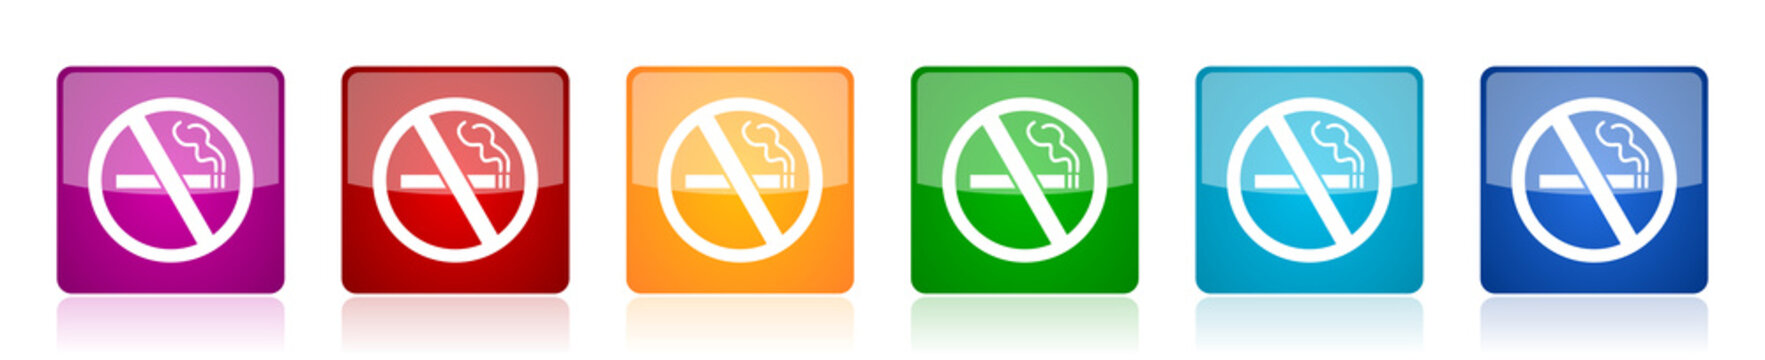 No smoking icon set, colorful square glossy vector illustrations in 6 options for web design and mobile applications